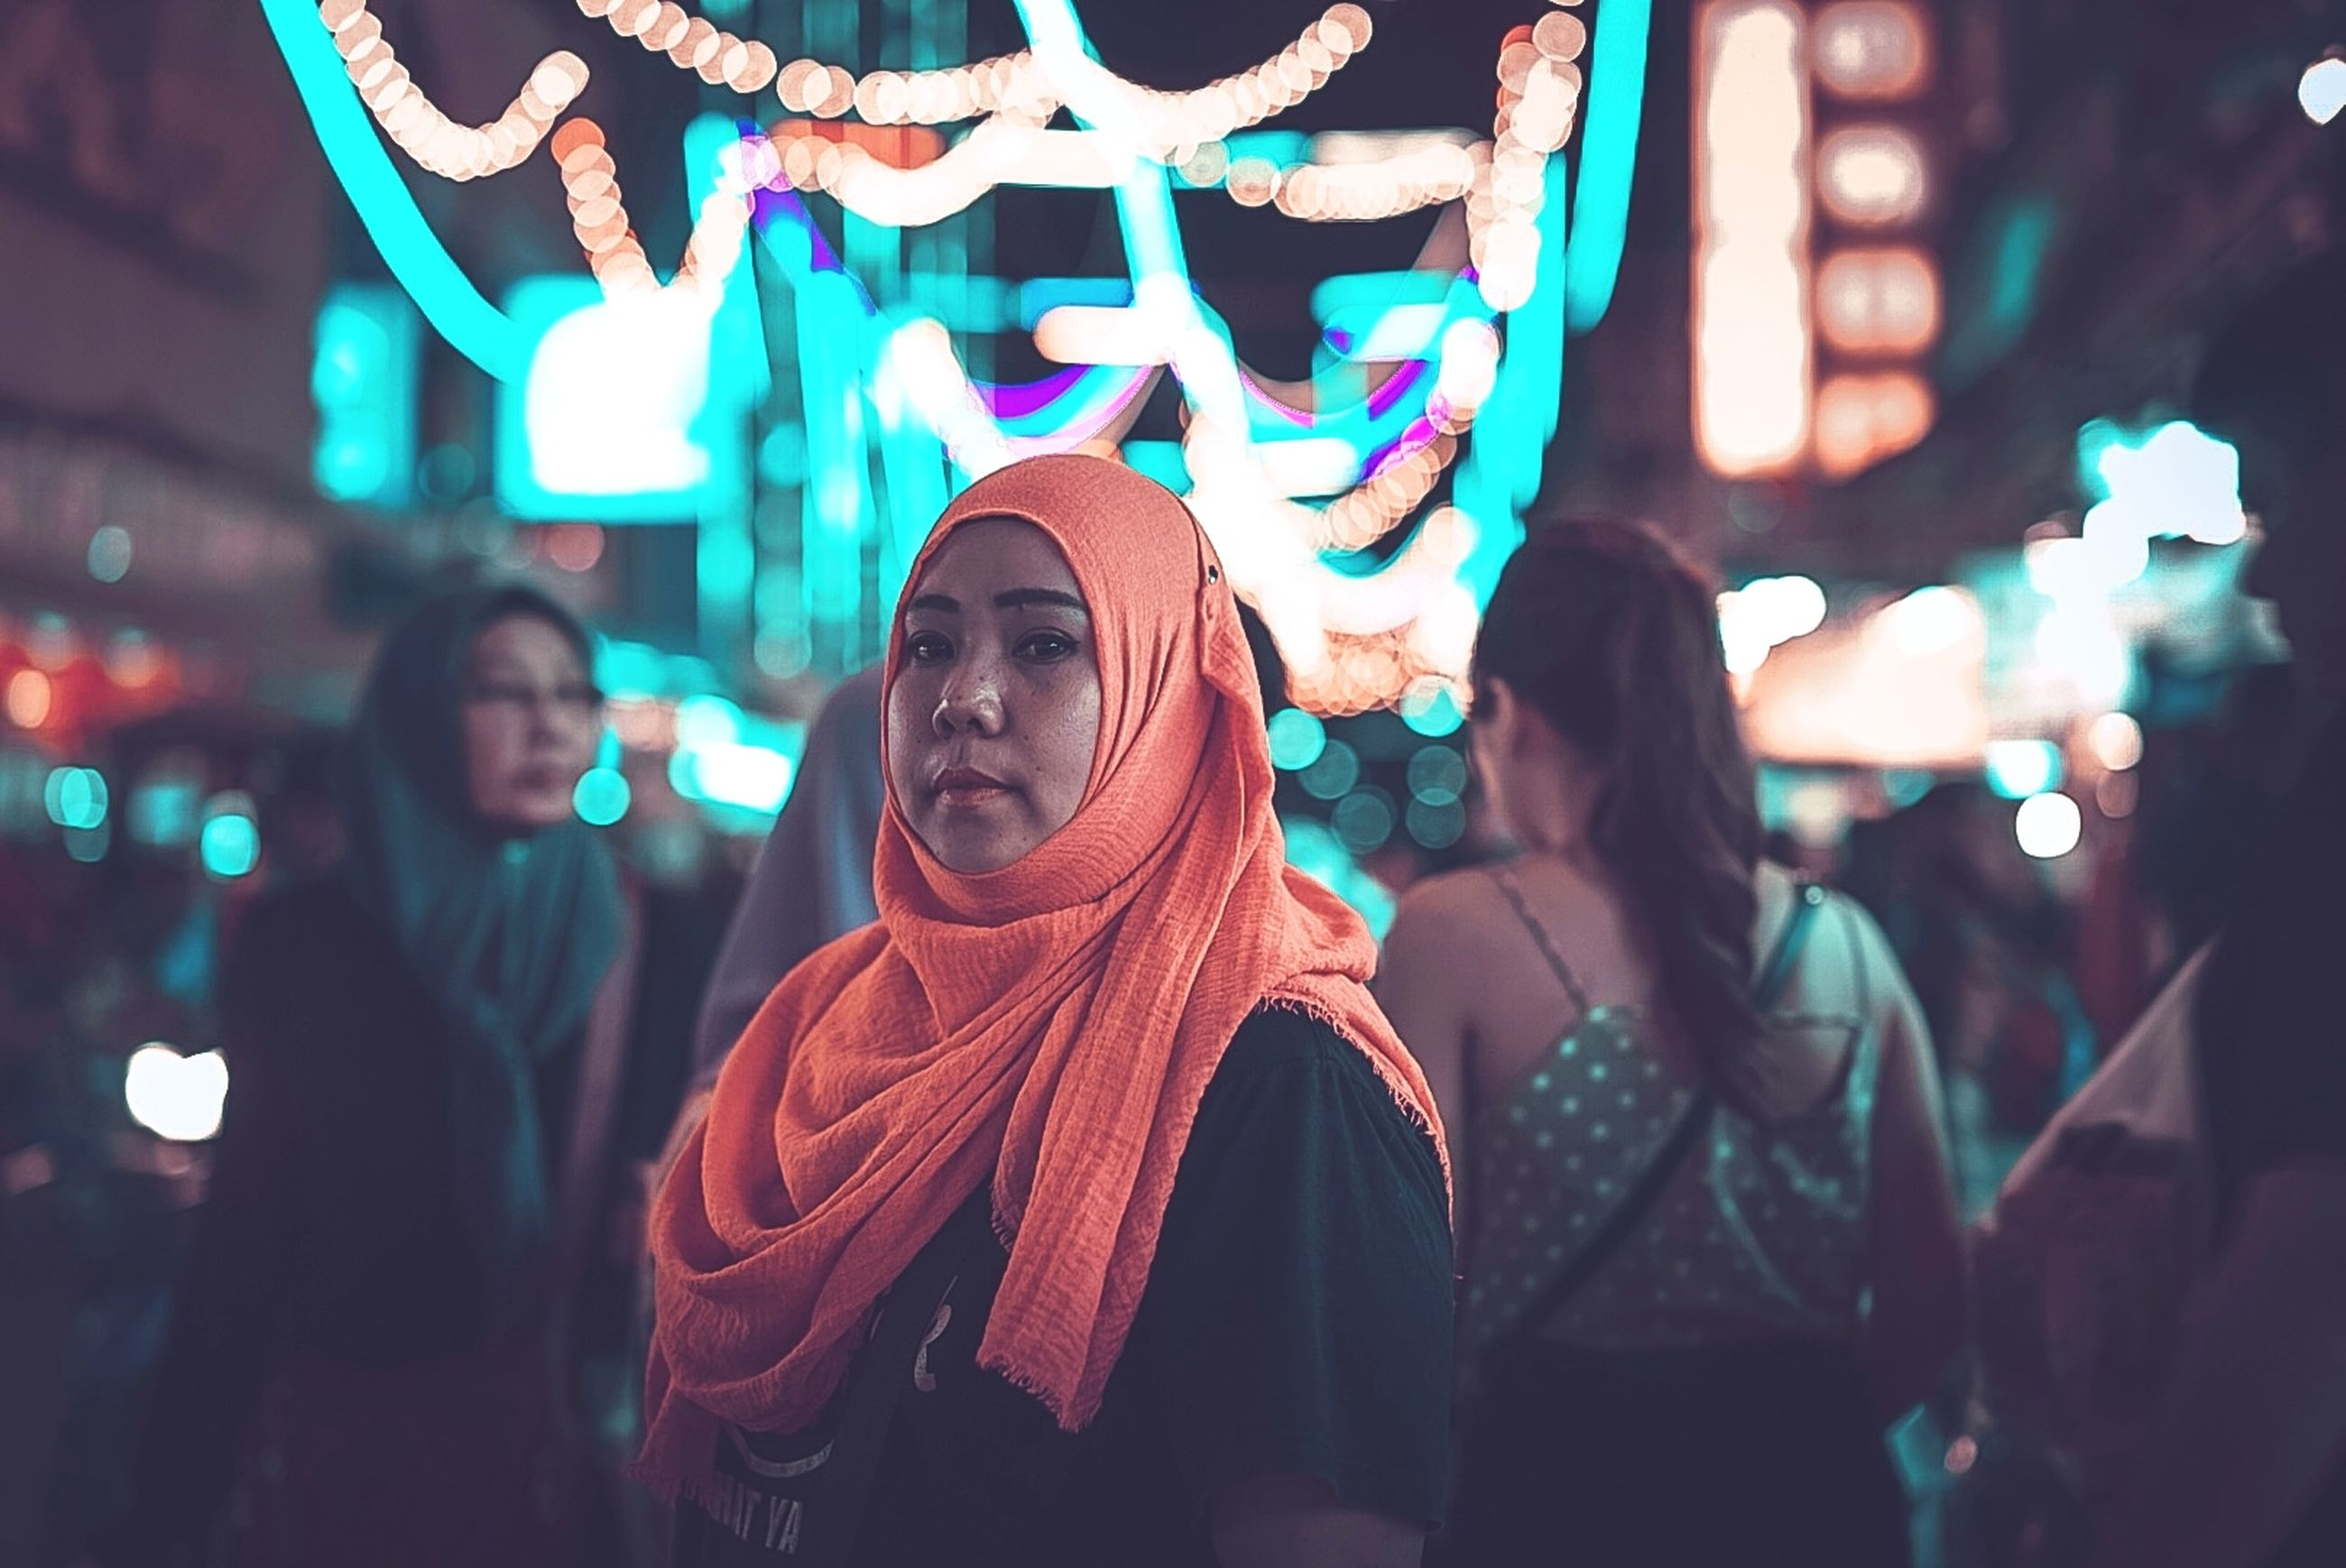 illuminated, night, focus on foreground, lifestyles, incidental people, real people, women, leisure activity, standing, portrait, group of people, people, emotion, adult, lighting equipment, young adult, front view, waist up, clothing, young women, nightlife, light, scarf